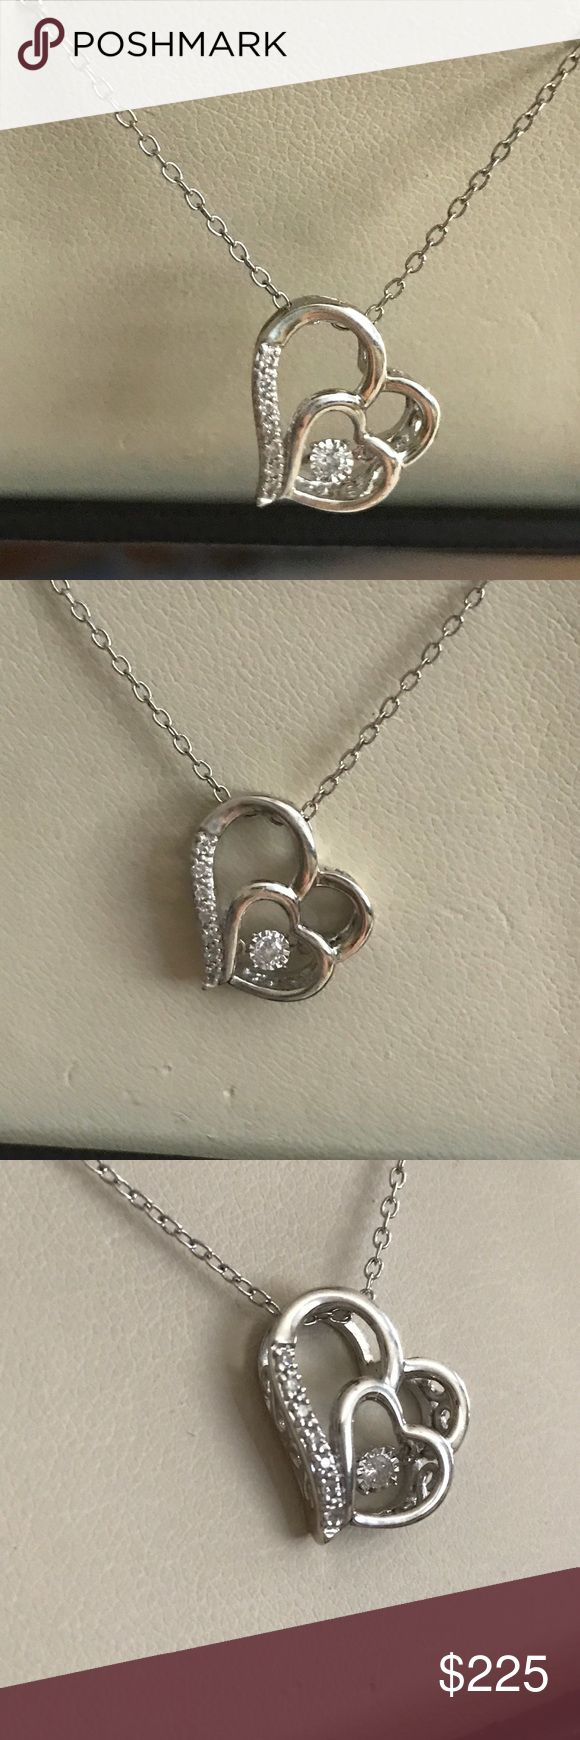 Diamond Rhythm Of Love Double Heart Necklace Beautiful genuine diamond rhythm double heart necklace. There is a diamond in the center as well as diamonds on the outer end of the large heart. It is set in sterling silver. It is hallmark 925 Zei ZEI Jewelry Necklaces